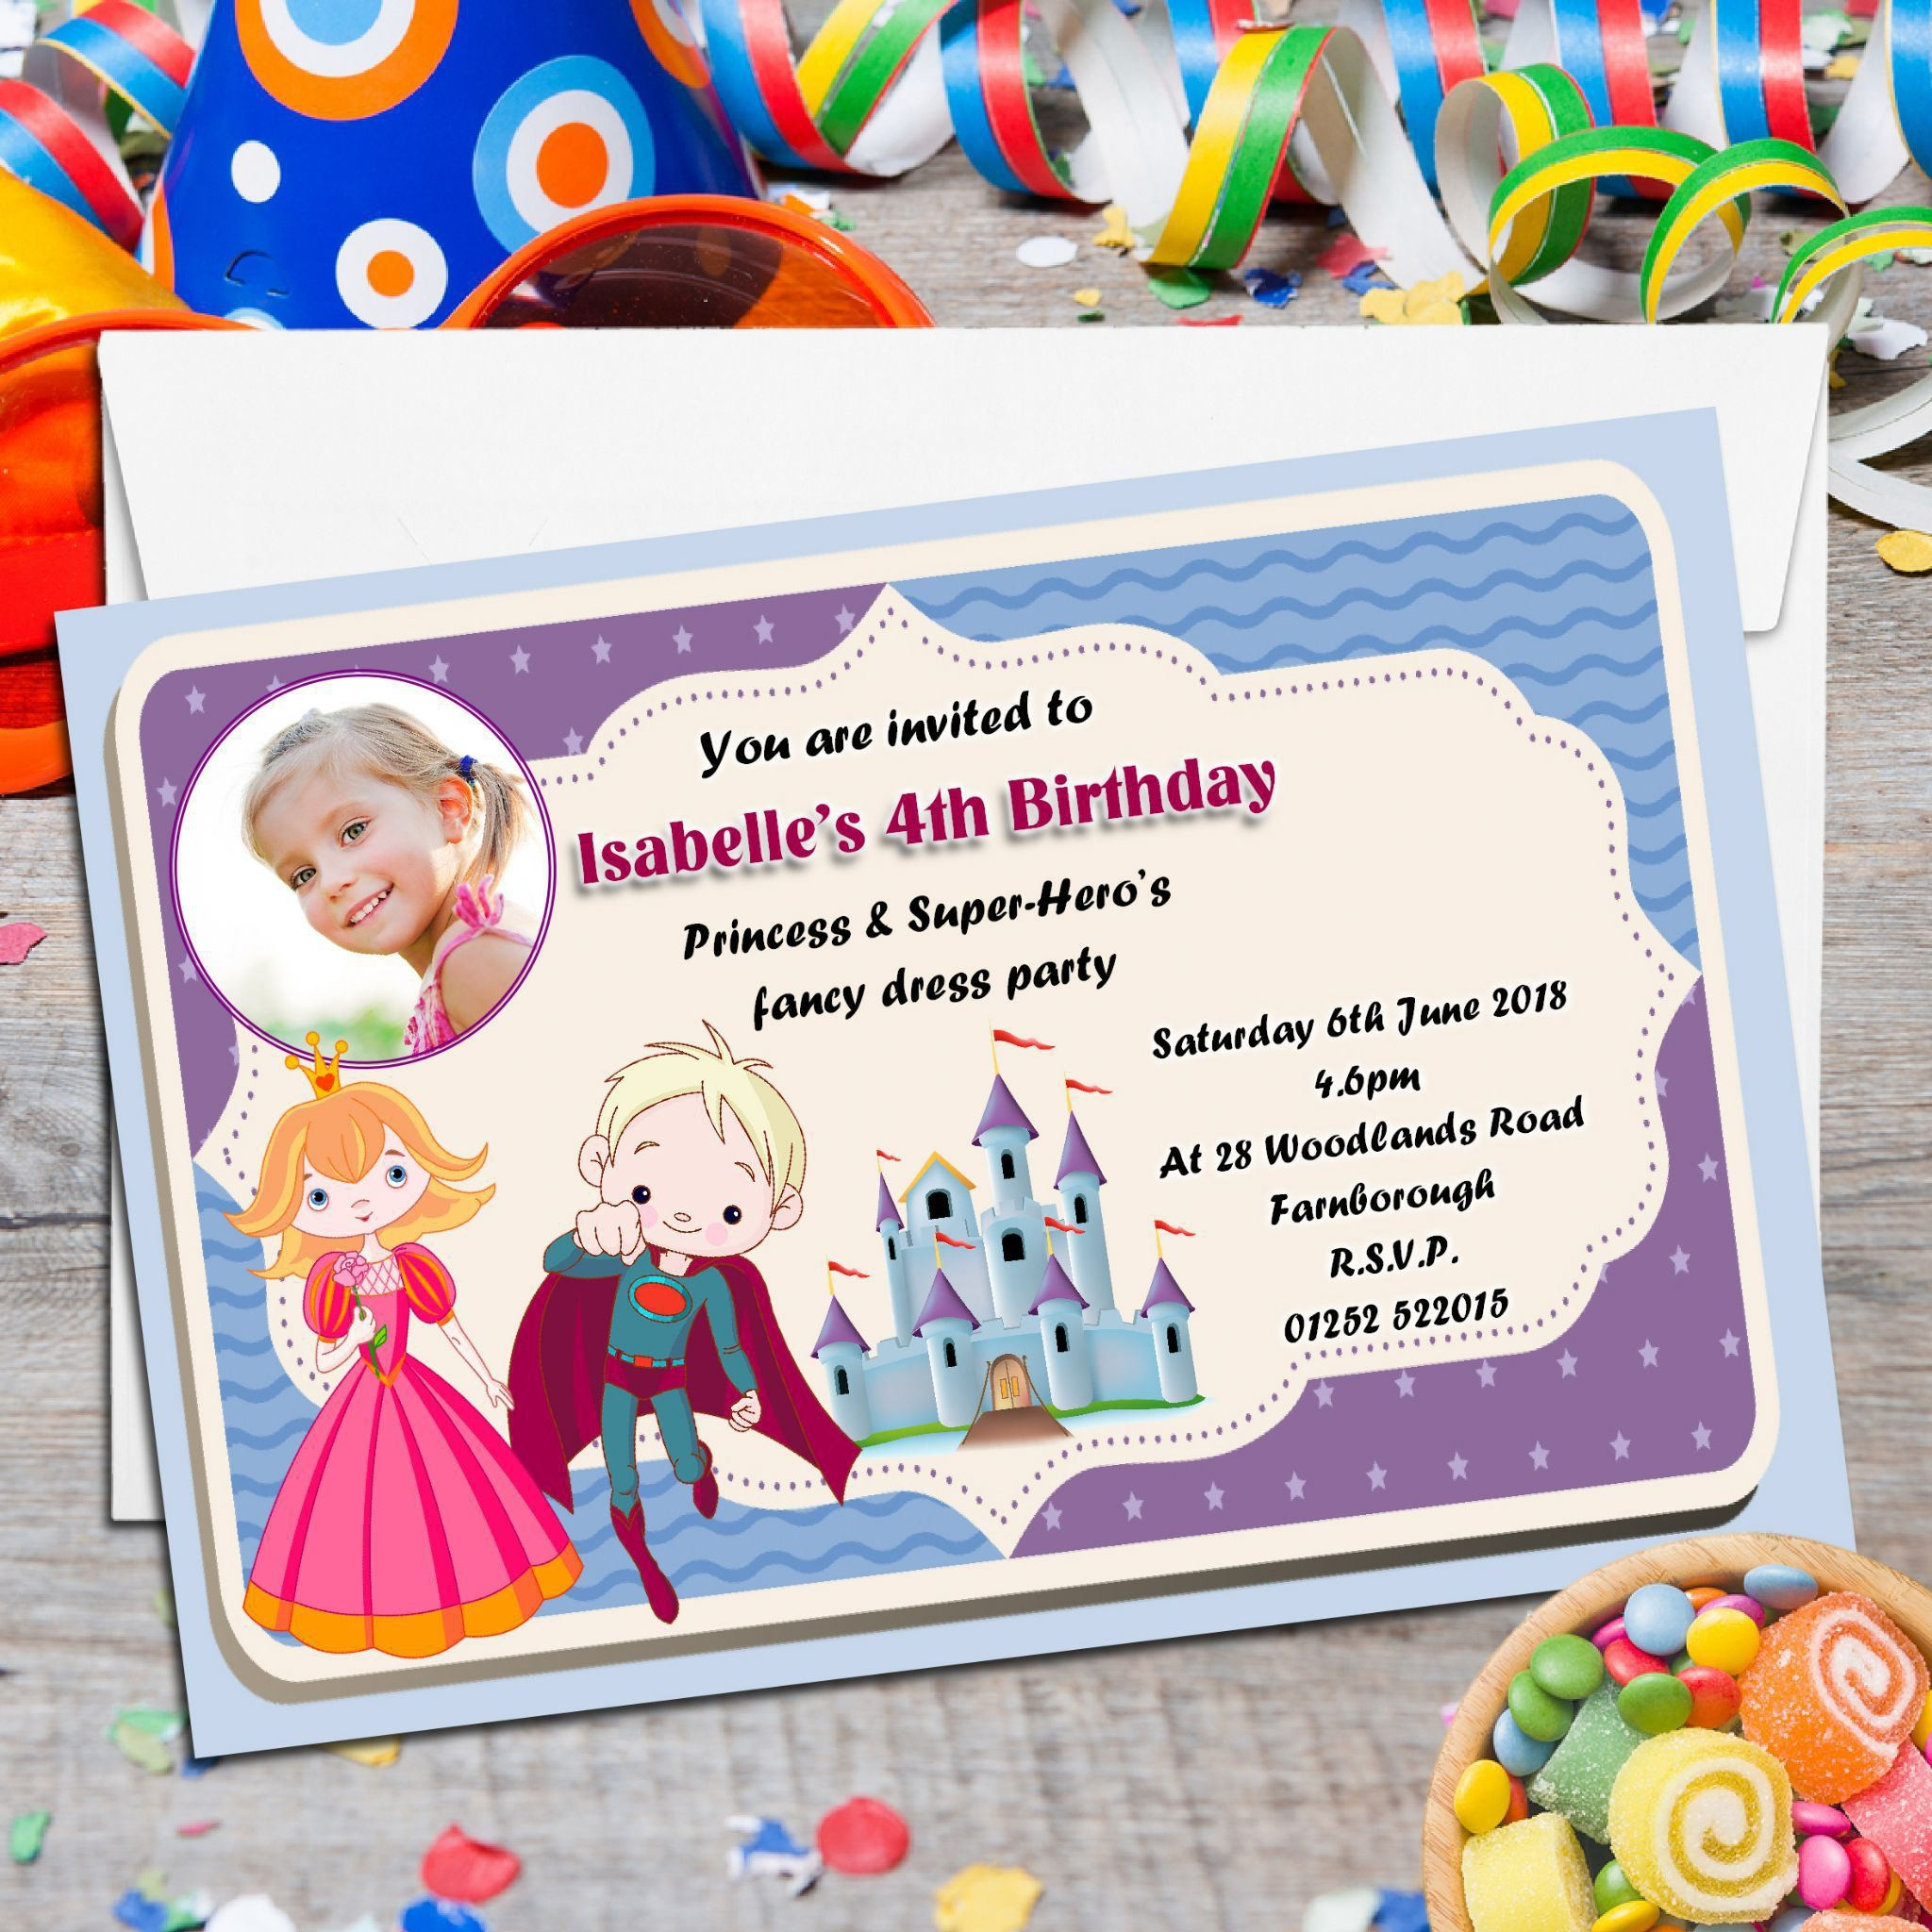 1st birthday invitation cards in telugu ; invitation-cards-for-1st-birthday-in-telugu-best-happy-birthday-invitation-cards-happy-birthday-invitation-card-of-invitation-cards-for-1st-birthday-in-telugu